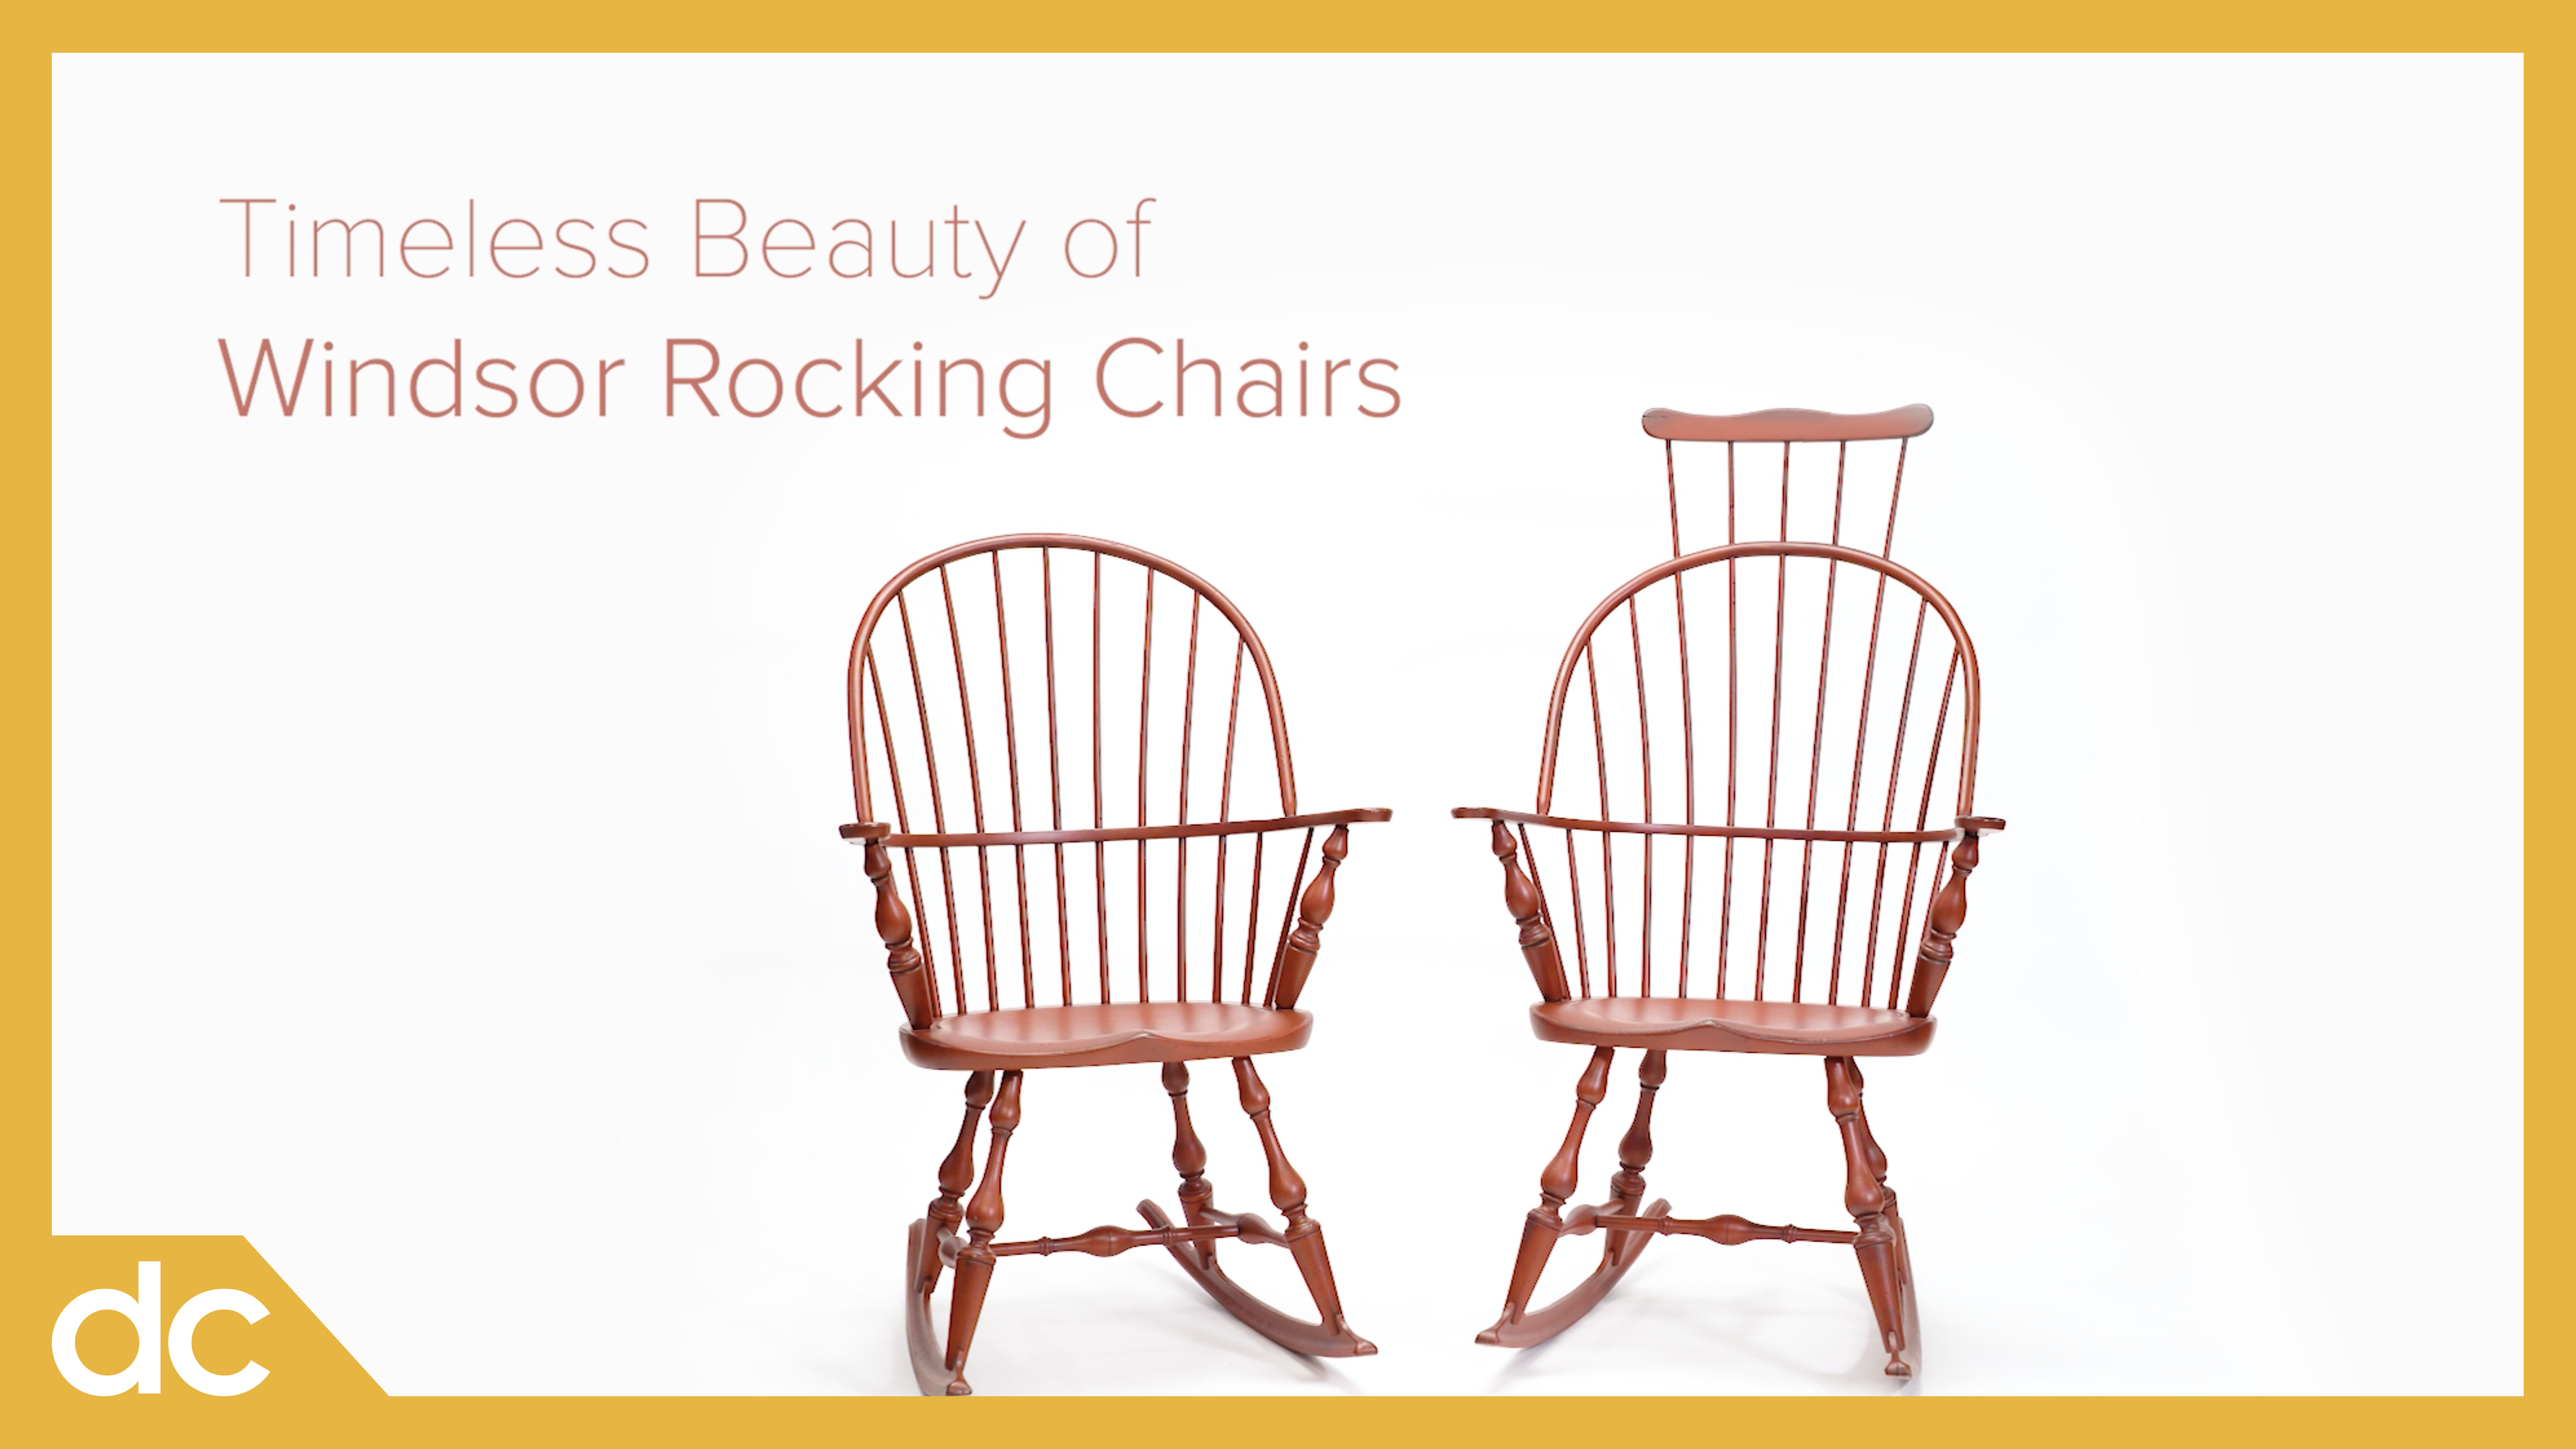 Timeless Beauty of Windsor Rocking Chairs